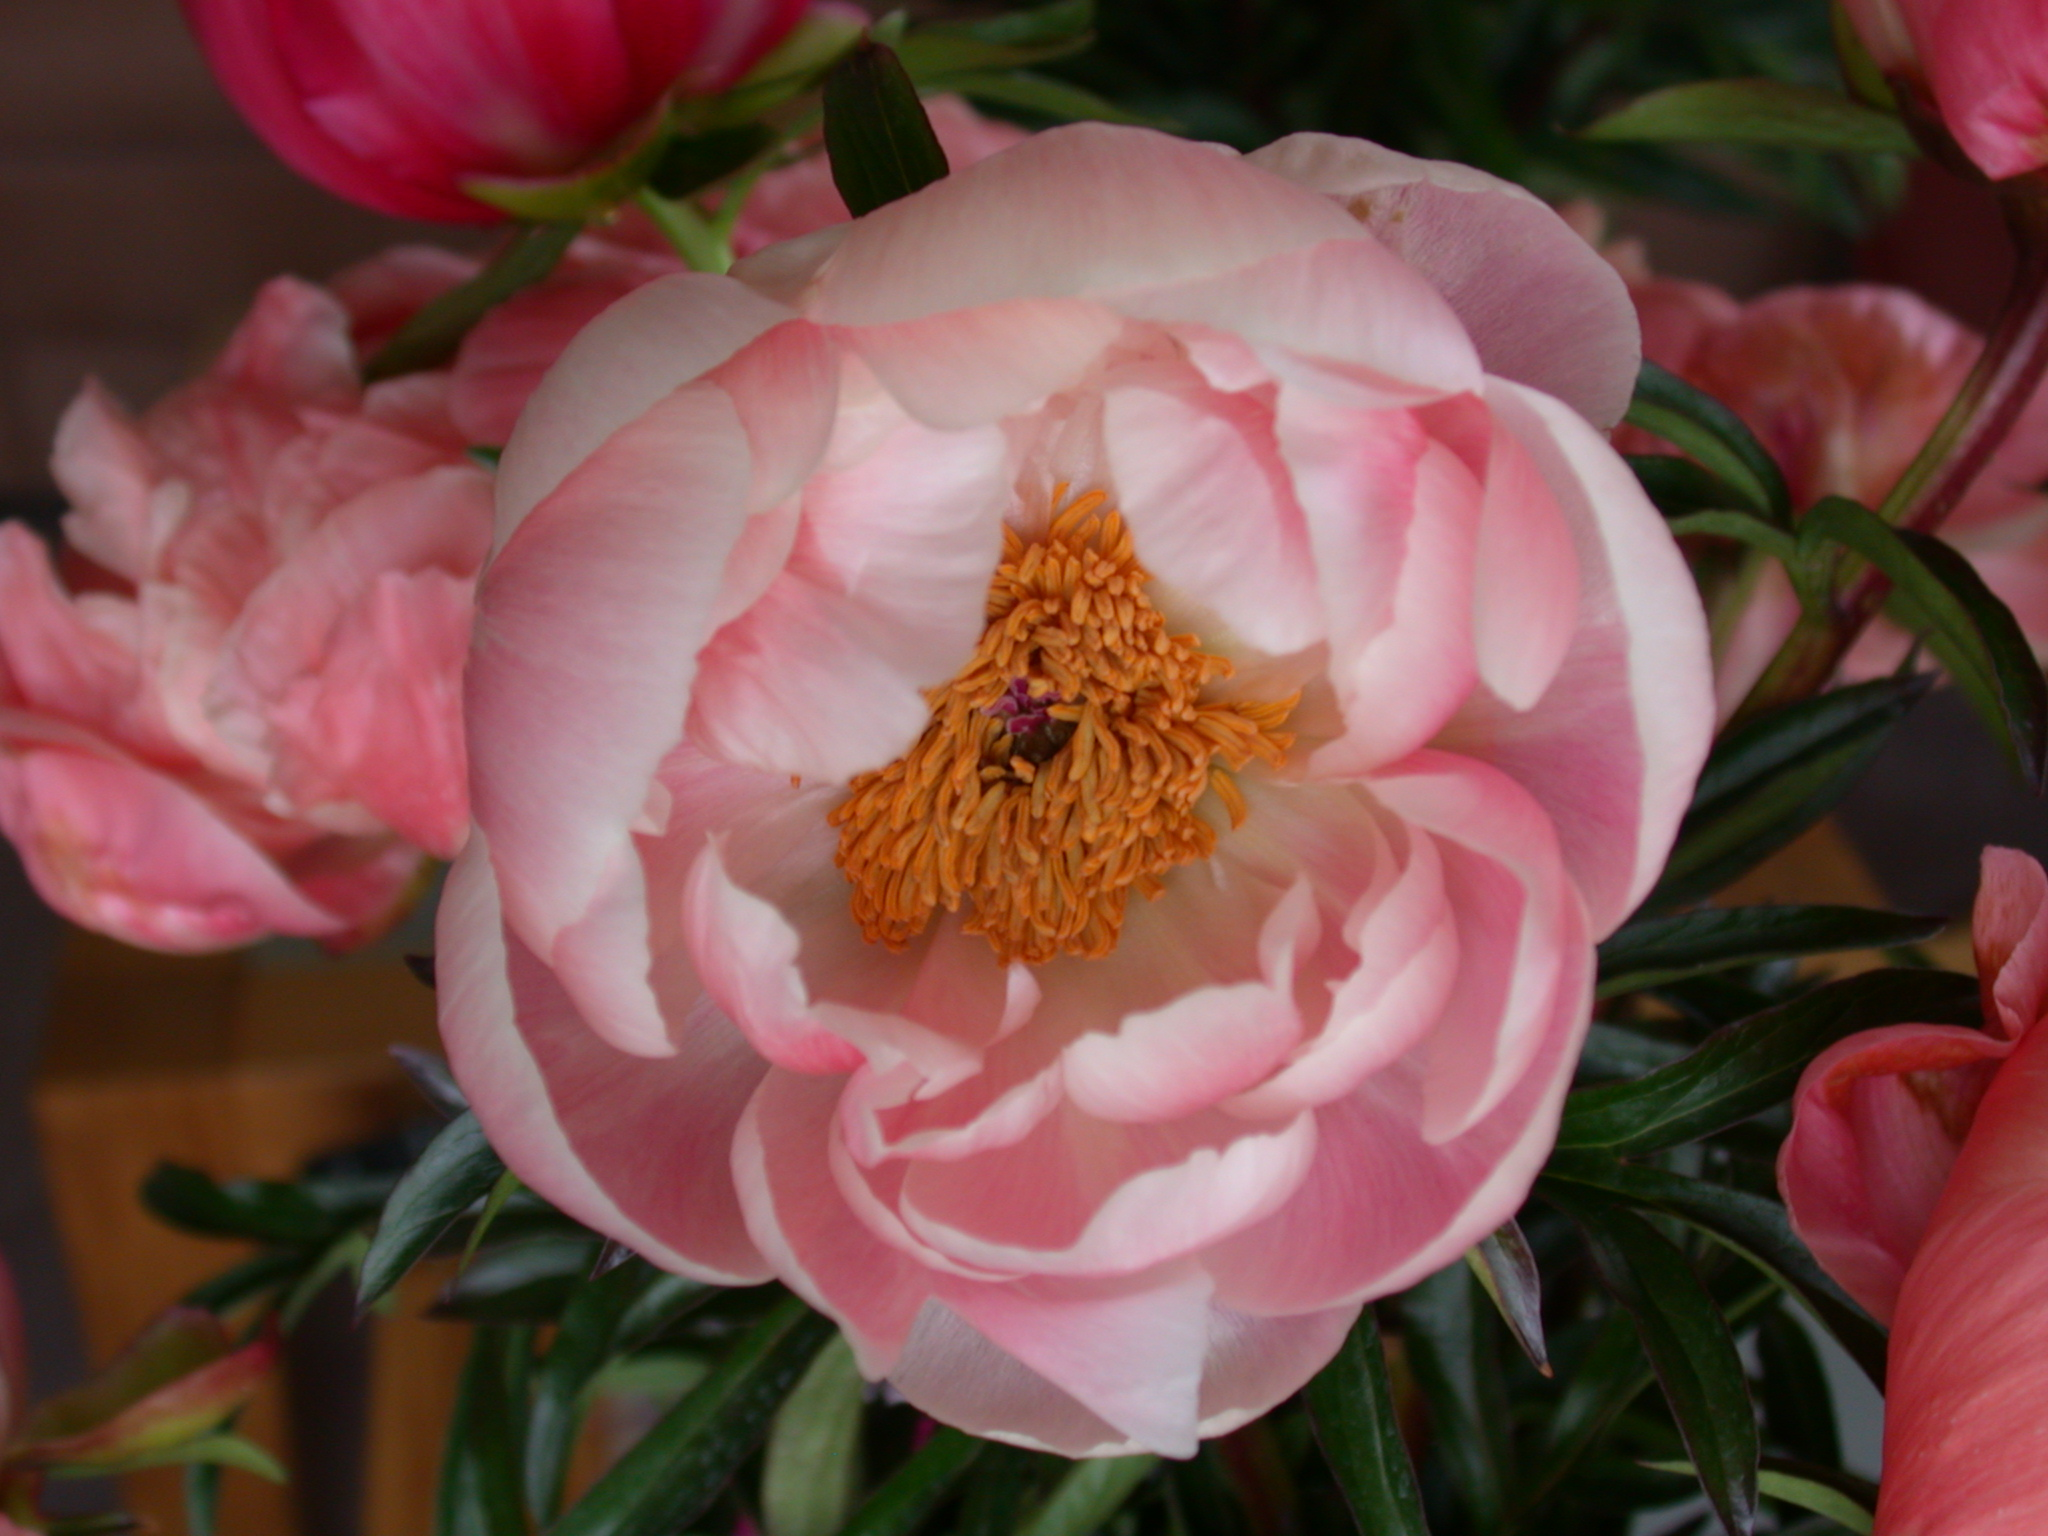 flower romance romantic pink petal lovely nature paeonia images